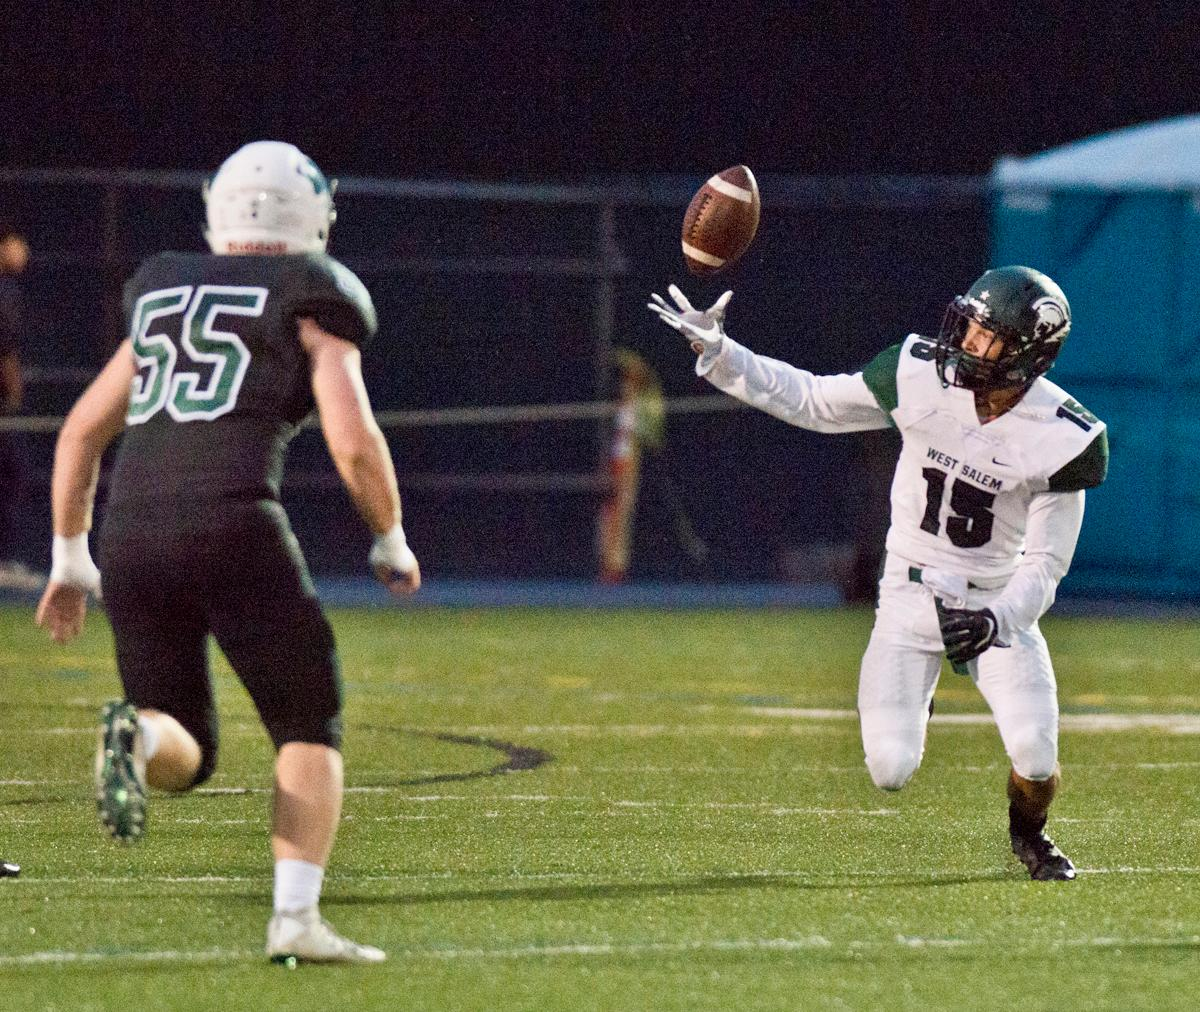 West Salem Titans wide receiver Anthony Gould (#15) can't hold on to a long pass as Sheldon Irish linebacker Chris Collins (#55) closes in. On a rainy Monday evening Sheldon defeated West Salem 41-7. The game had been postponed from Friday due to unhealthy levels of smoke in the atmosphere due to nearby forest fires. Photo by Dan Morrison, Oregon News Lab